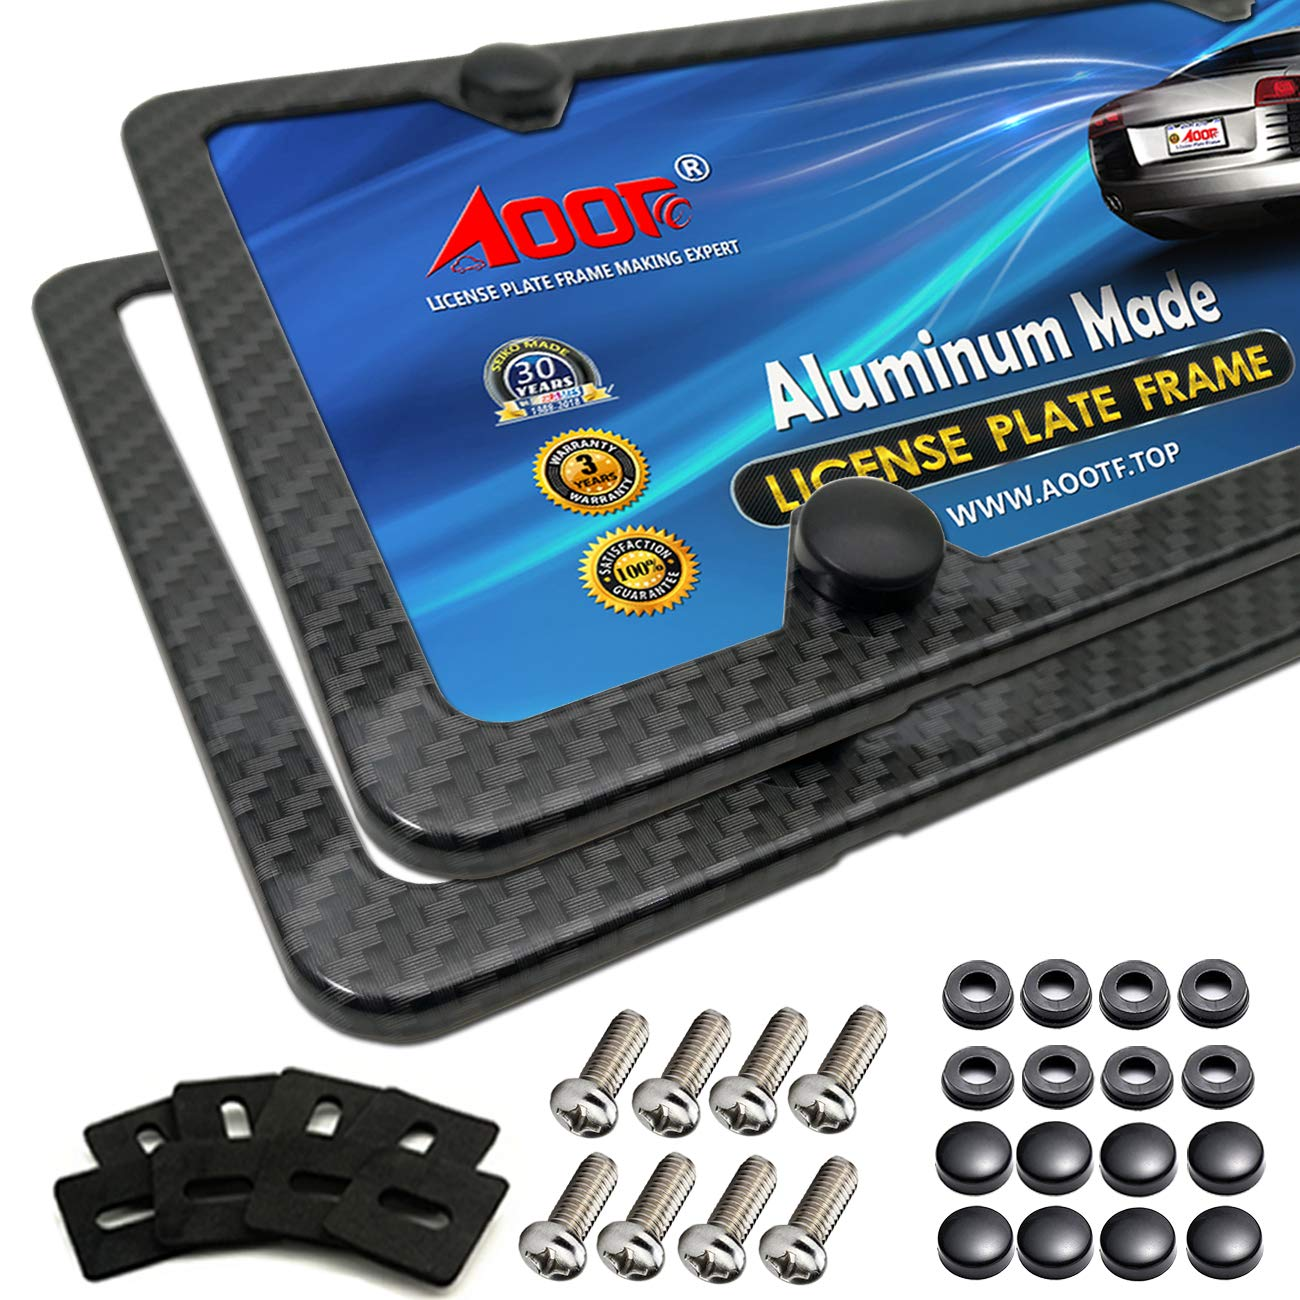 Aootf License Plate Screw Caps Carbon Fiber Pattern for Matching Carbon Fiber License Plate Frame and Gift Plate Frame Screws 24 Kit